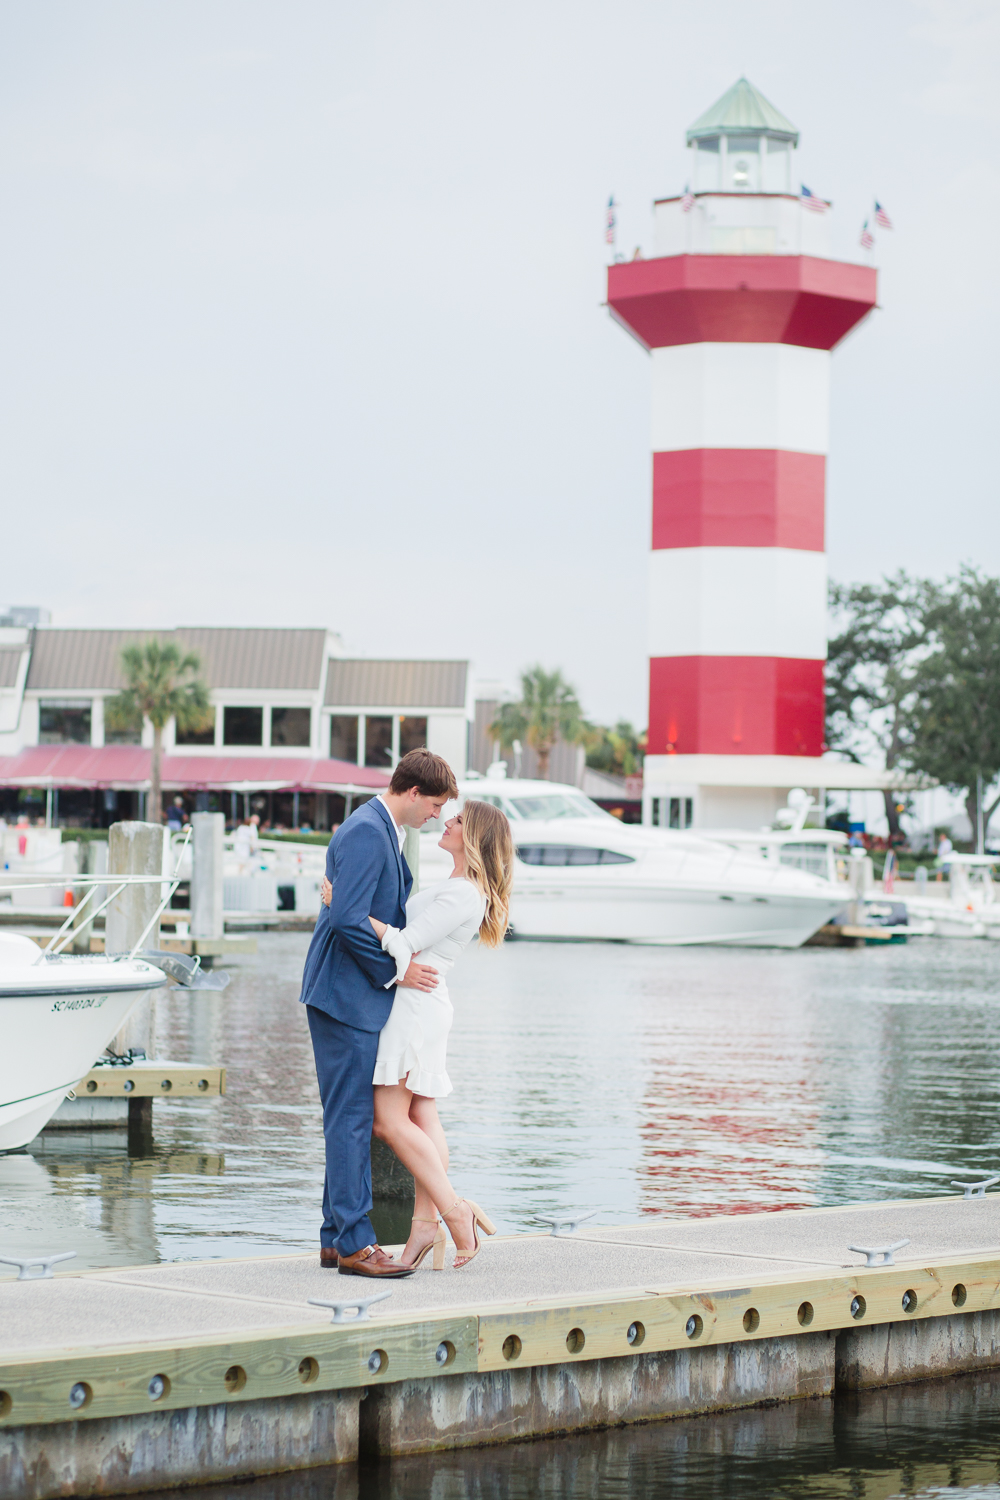 emily baucom charleston wedding photographer (14 of 25)